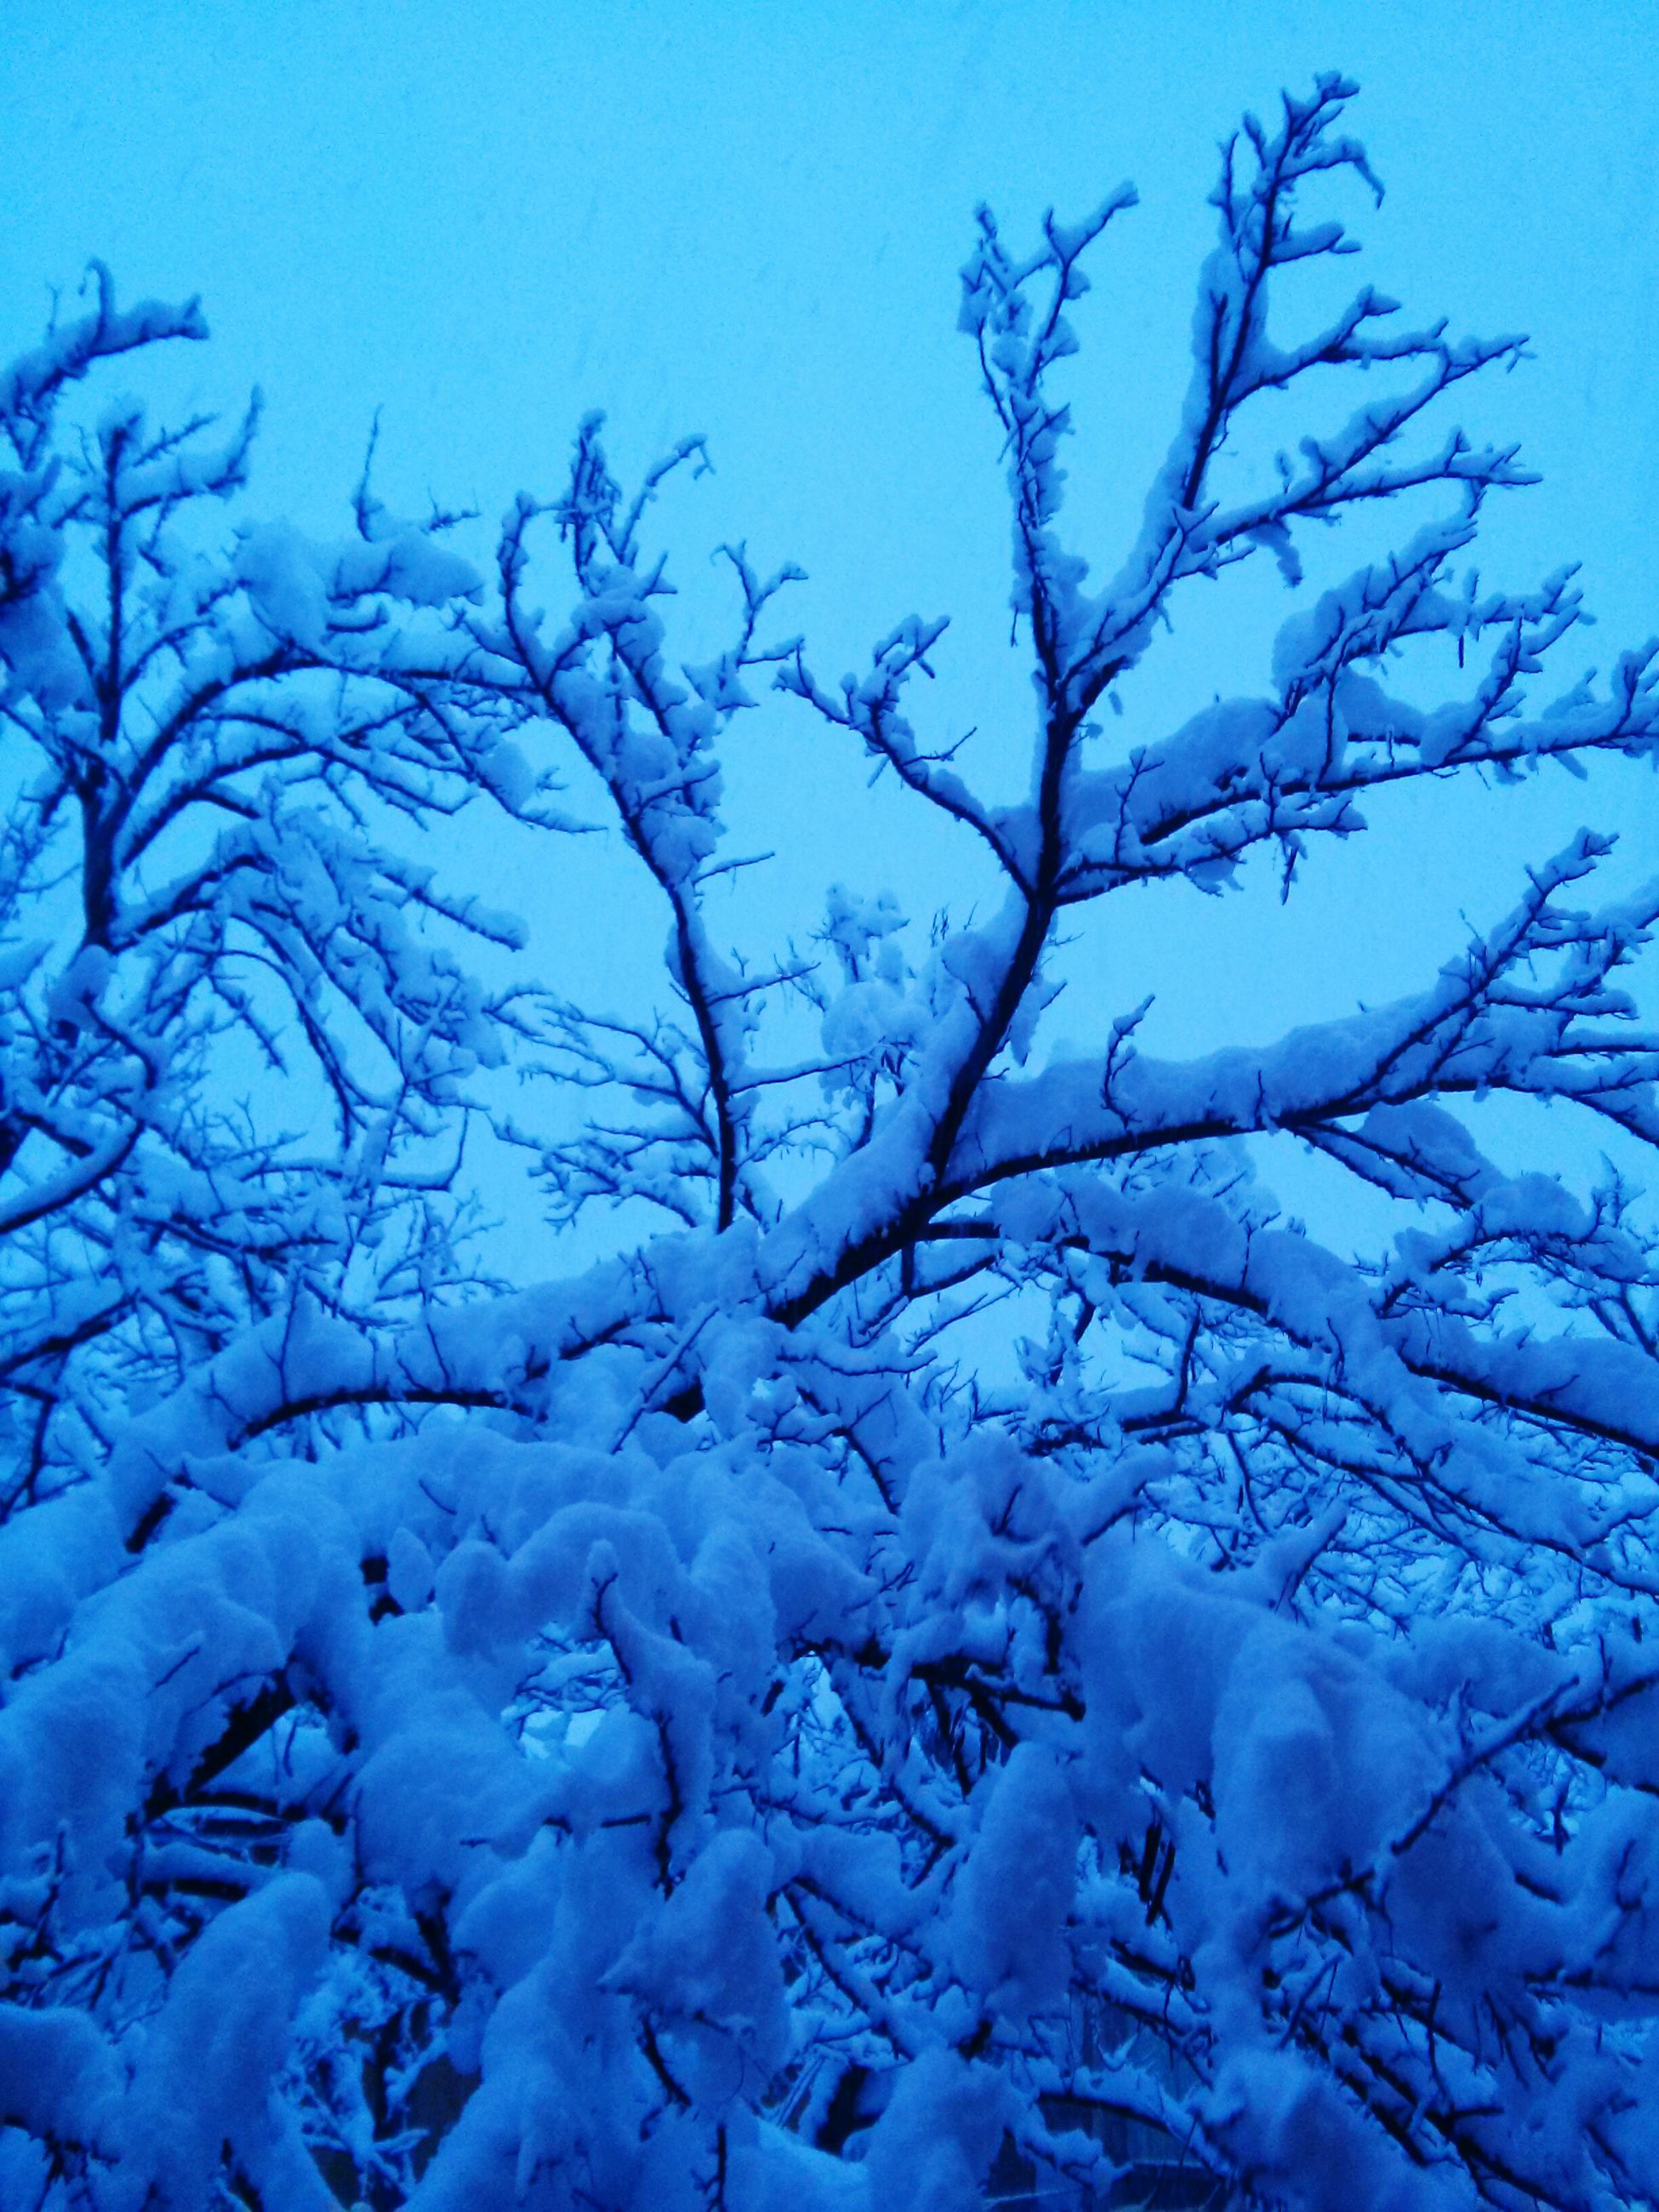 bare tree, blue, clear sky, branch, tranquility, nature, beauty in nature, tree, tranquil scene, winter, scenics, cold temperature, low angle view, sky, season, snow, outdoors, day, no people, copy space